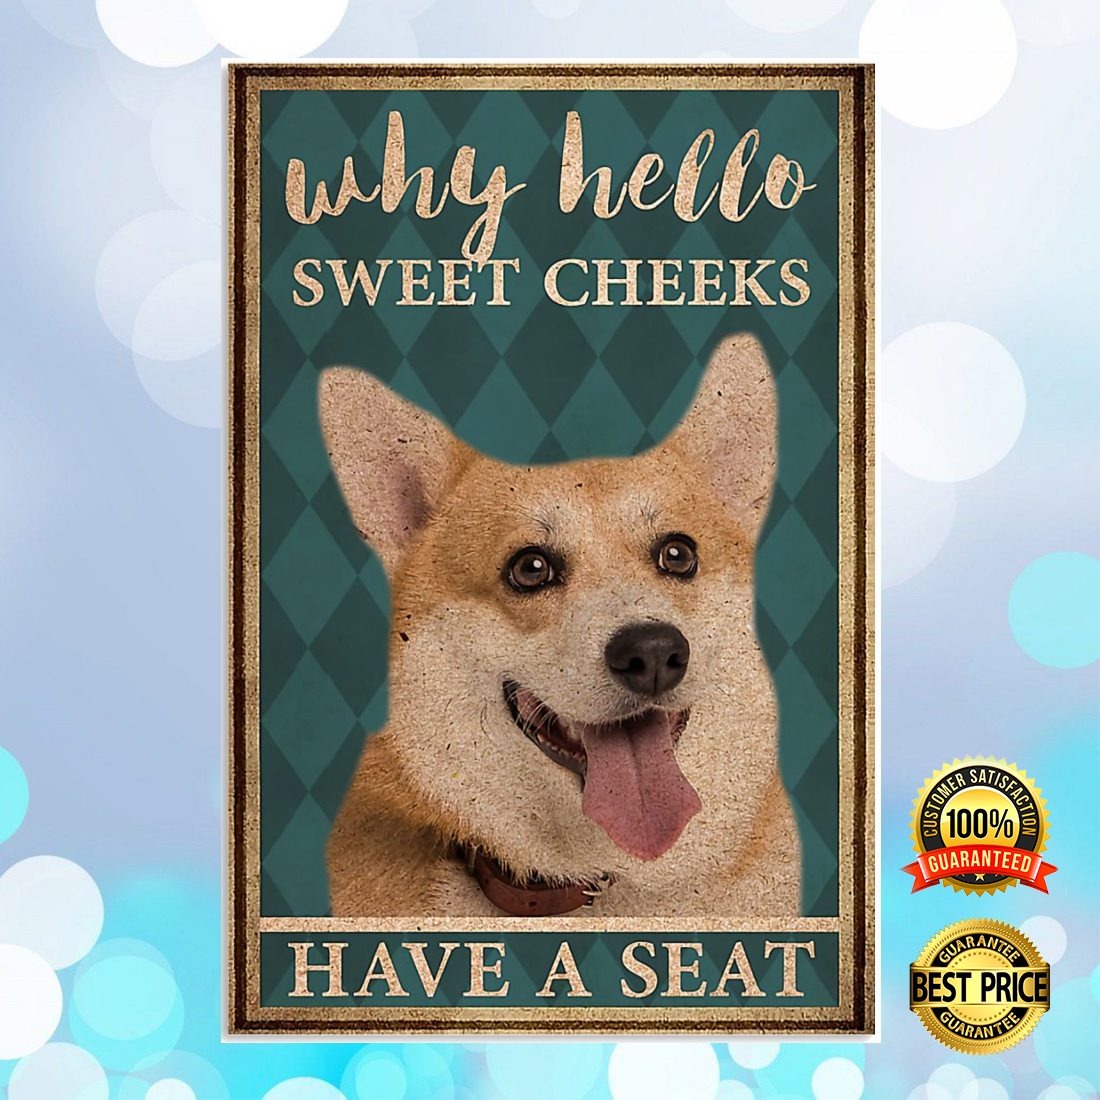 CORGI WHY HELLO SWEET CHEEKS HAVE A SEAT POSTER 5